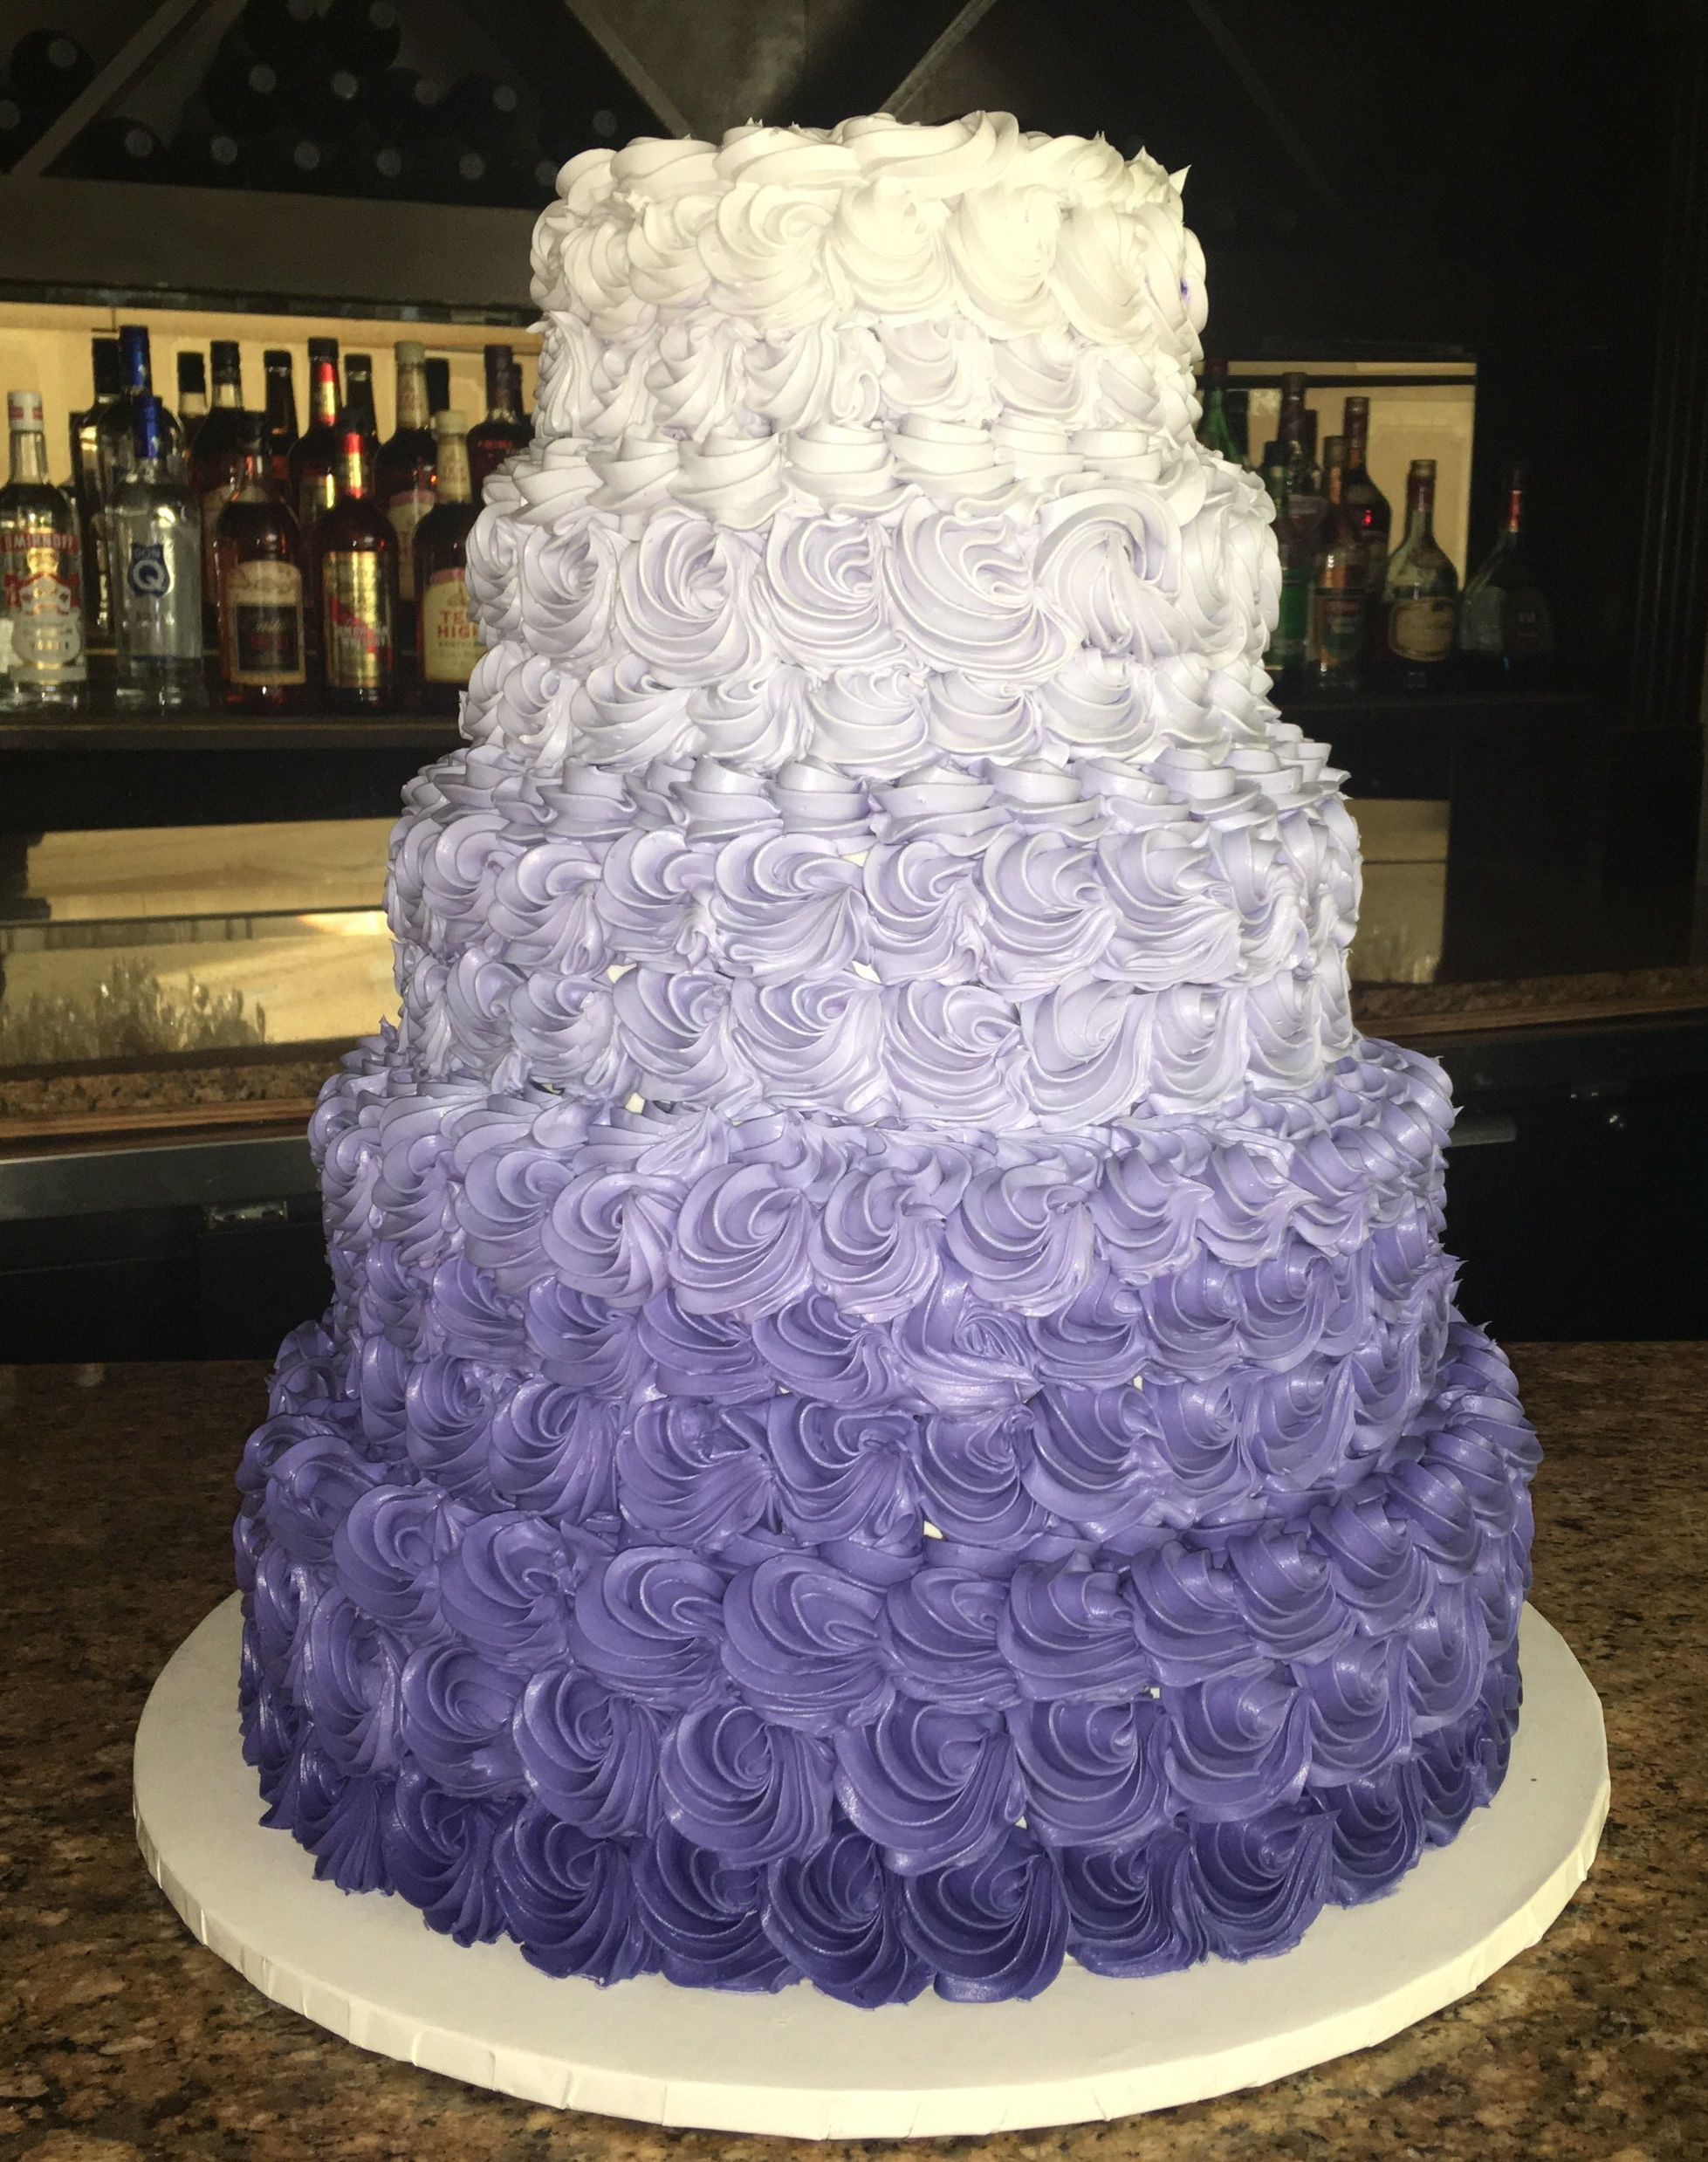 Large Rosette Cake, Ombre from Purple to White